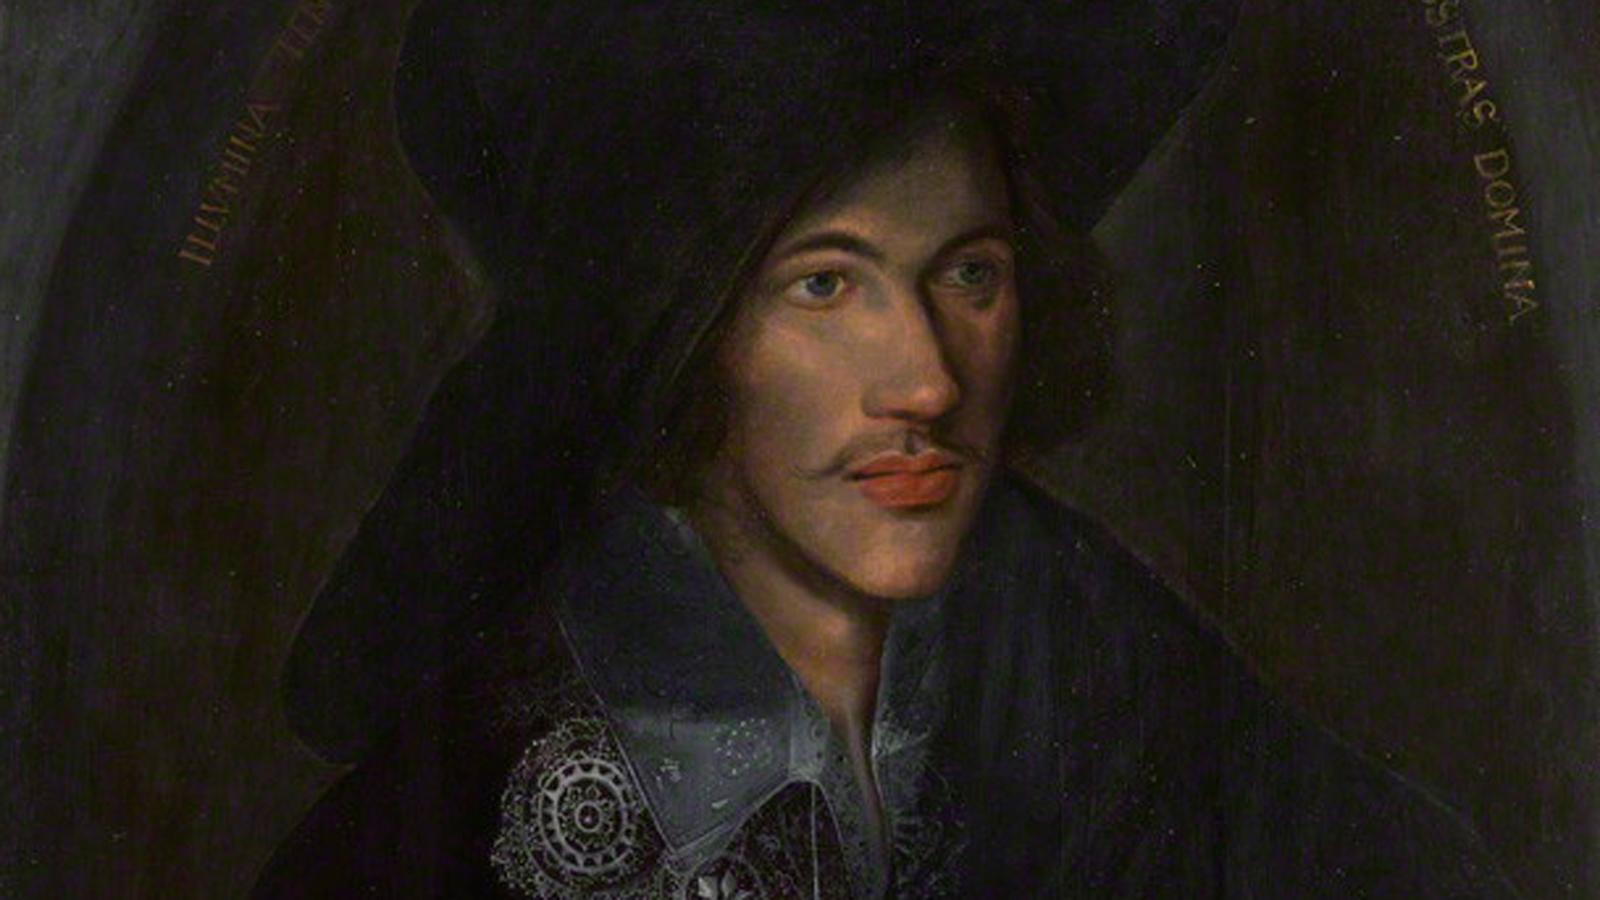 'Make me new': the multiple reinventions of John Donne